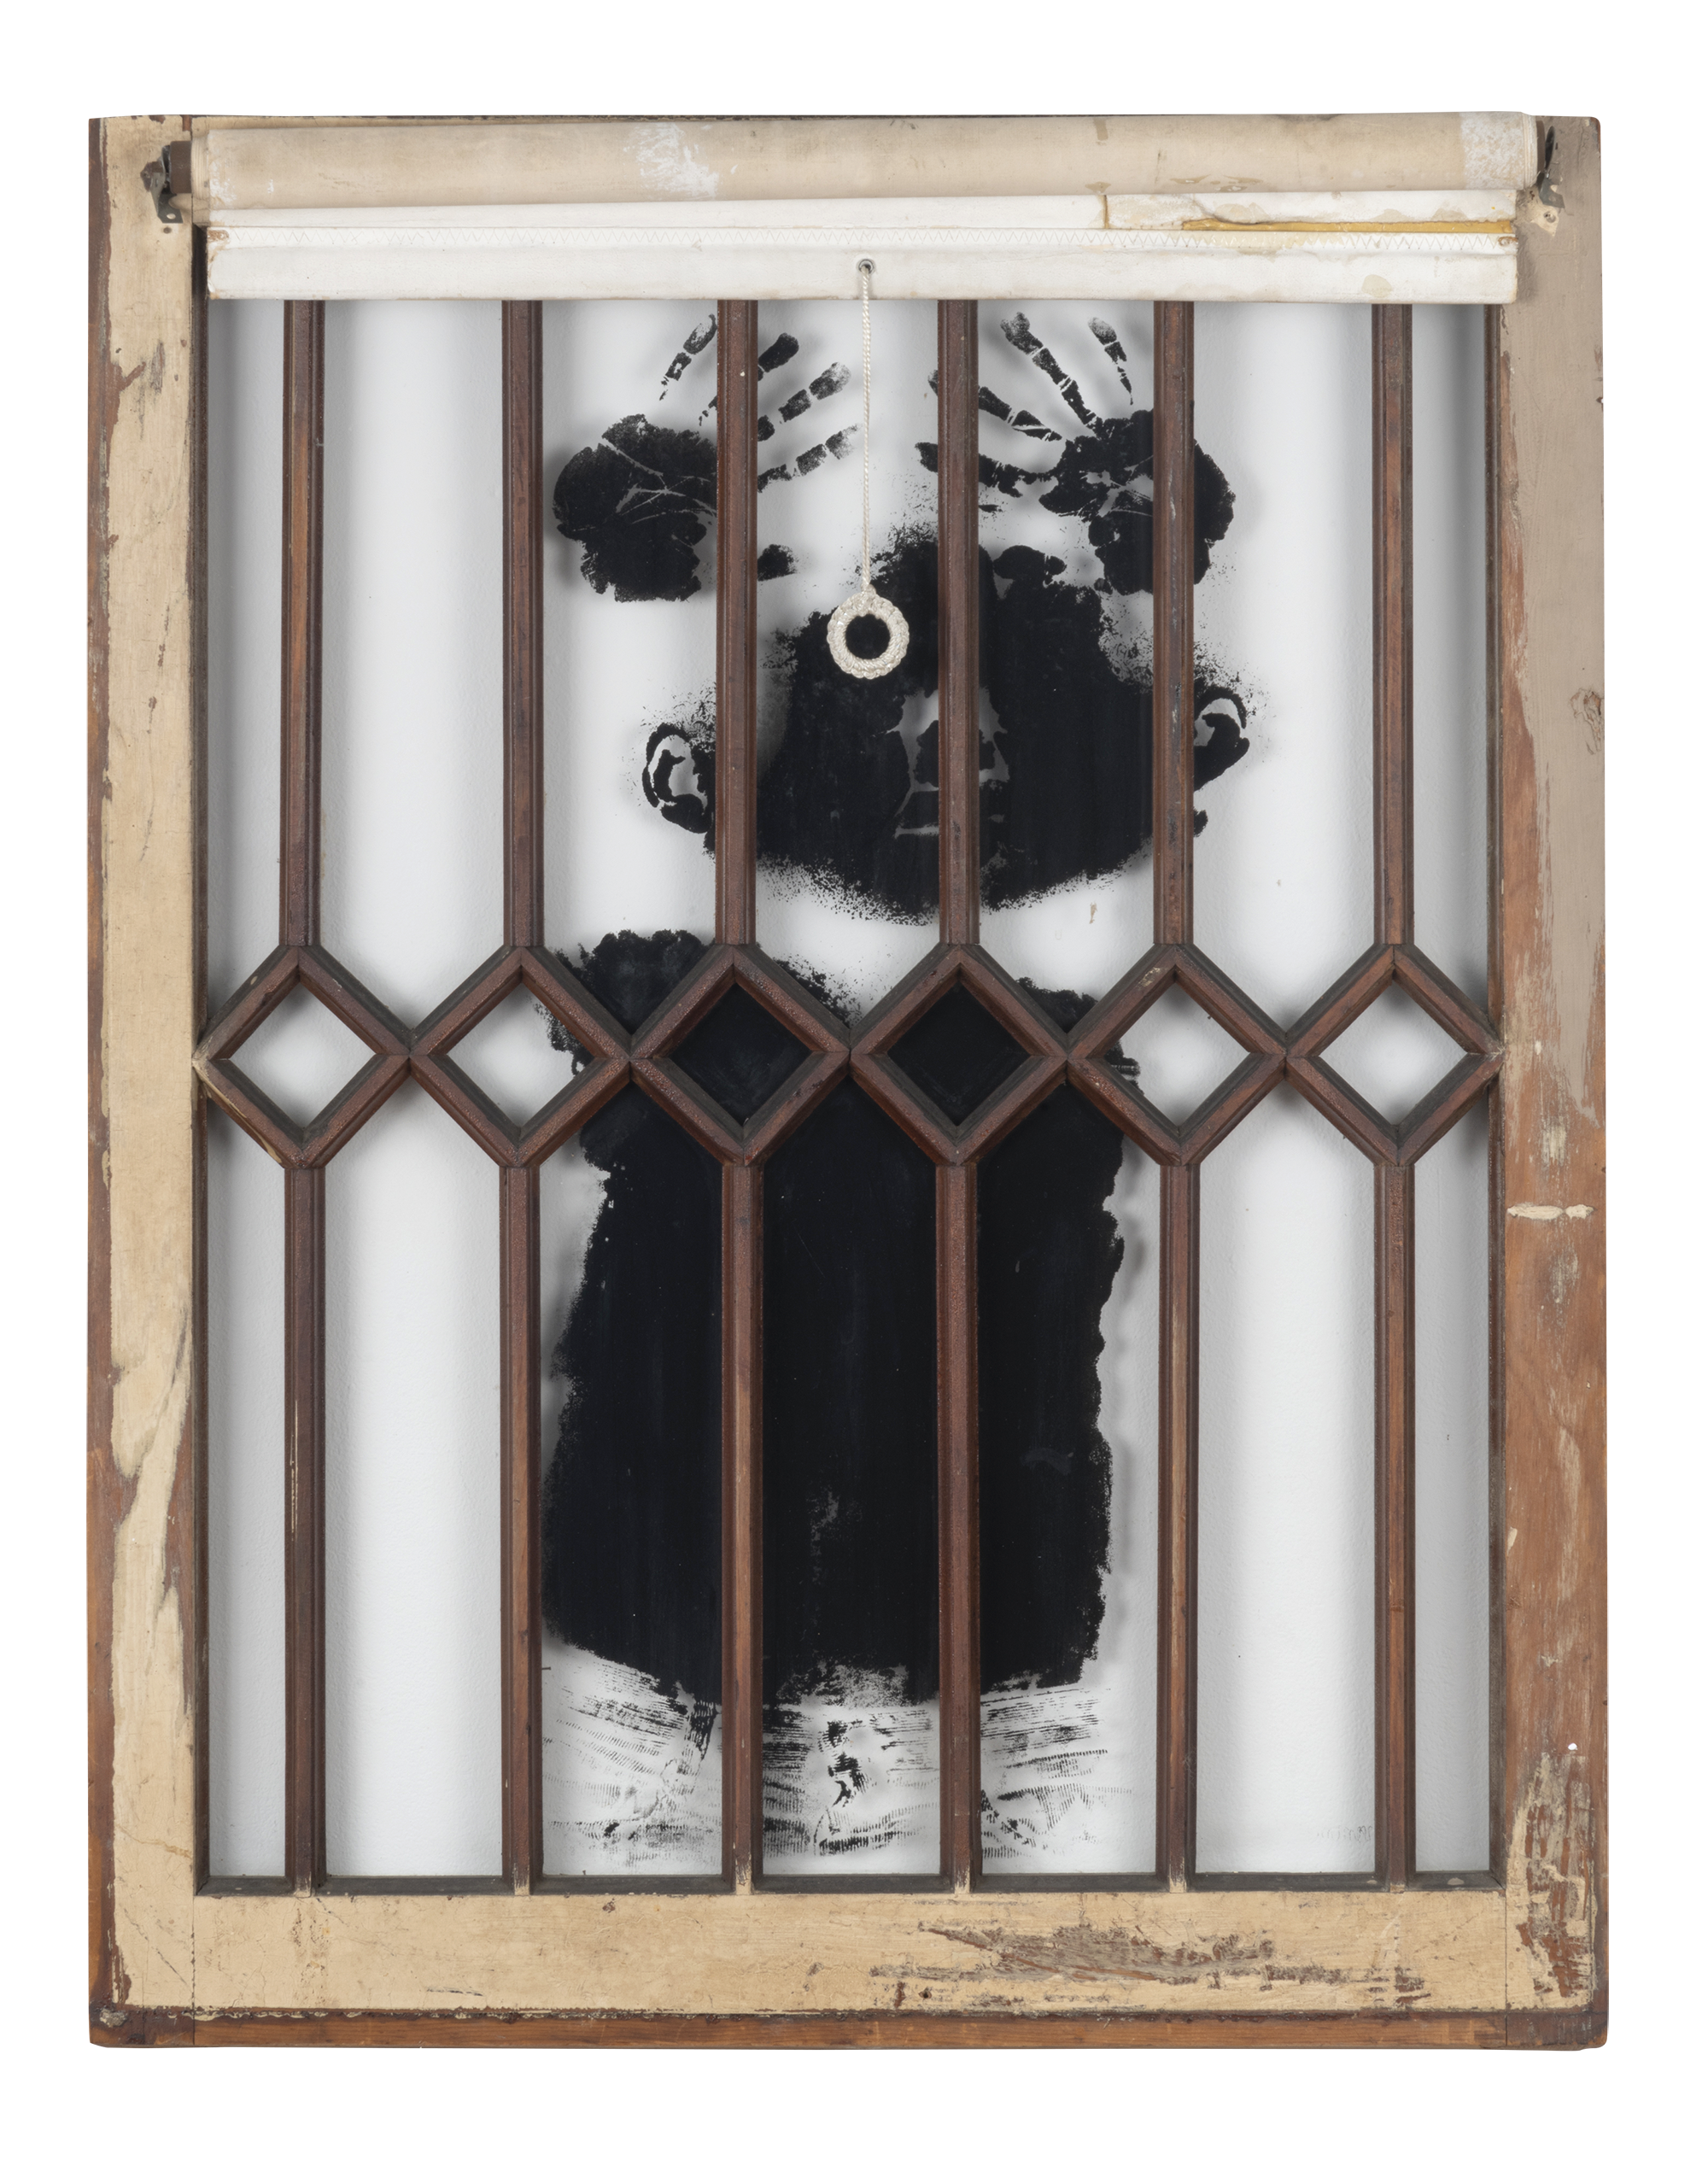 David Hammons, Black Boy's Window, 1968. Silkscreen on glass, 35 3/4 x 27 3/4 inches (90.8 x 68.6 cm). Collection of Liz and Eric Lefkofsky